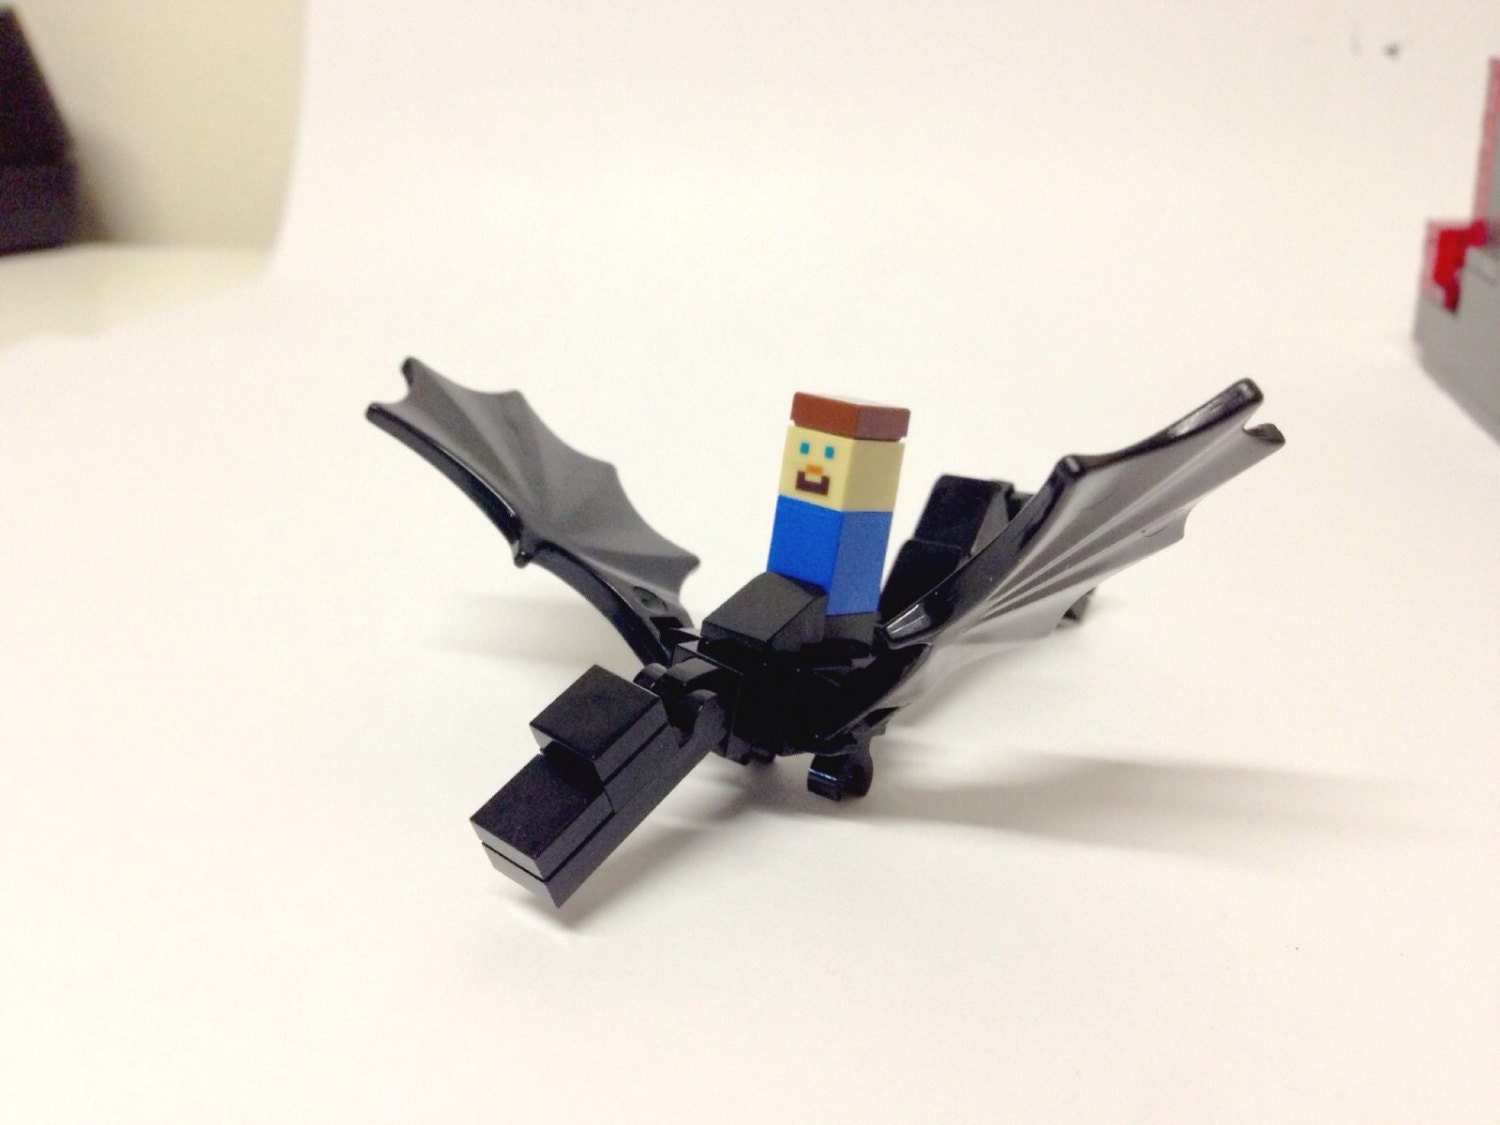 lego ender dragon instructions